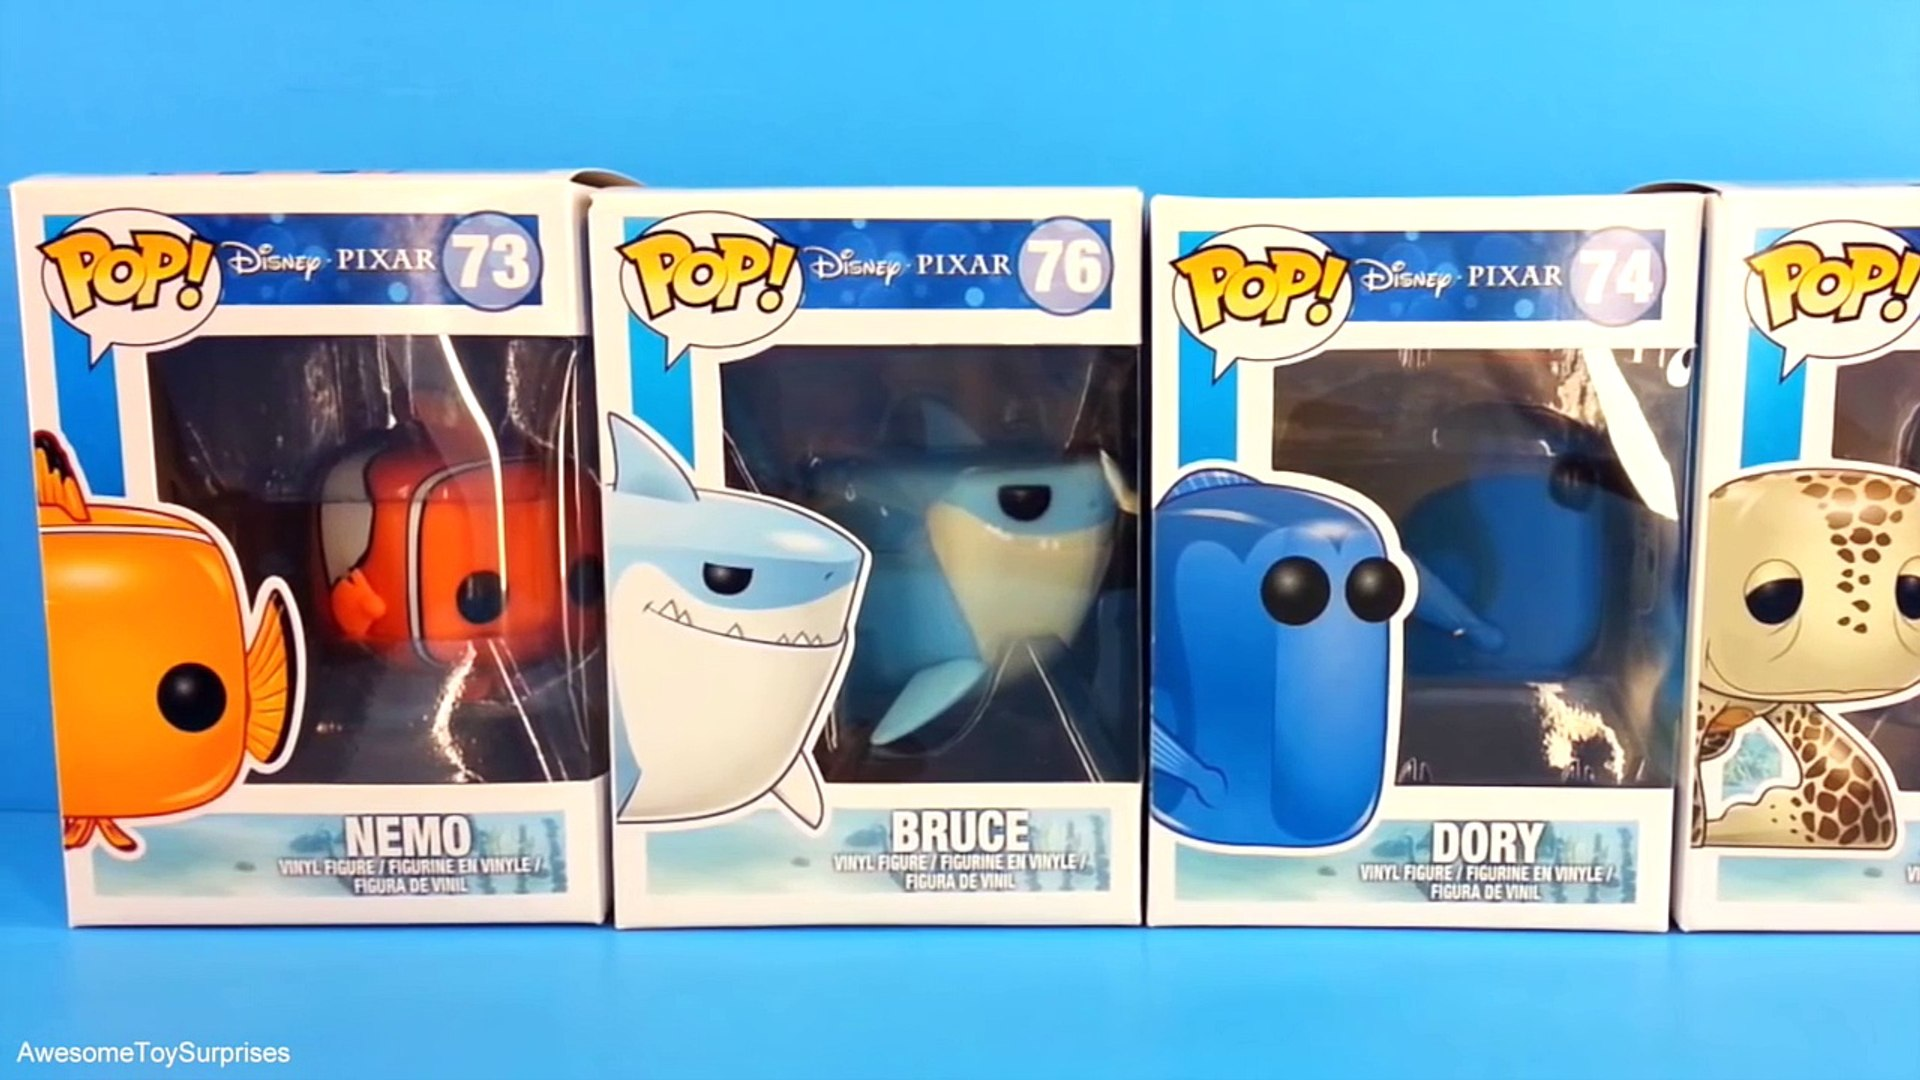 Stupendous Finding Nemo Dory Toys Nemo Funko Pop Toys With Finding Dory Bruce Crush Alphanode Cool Chair Designs And Ideas Alphanodeonline